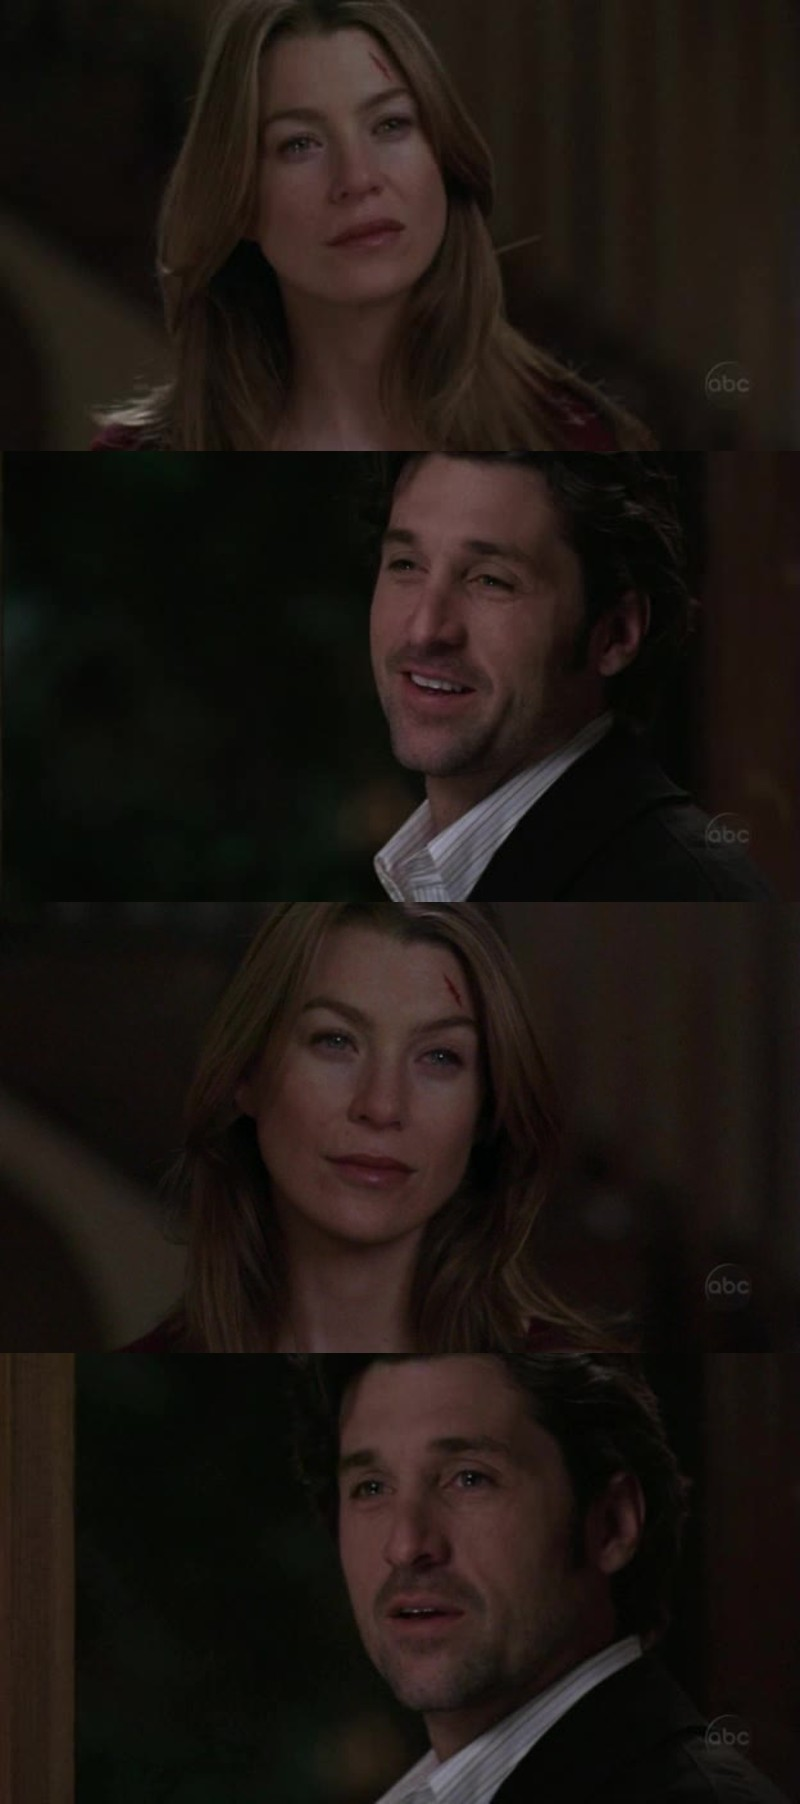 "Meredith: I can't, I can't remember our last kiss. All I could think about was, ""I'm going to die today and I can't remember our last kiss,"" which is pathetic. But the last time we were together and happy, I... want to be able remember that, and I can't Derek. I can't remember. Derek: I'm glad you didn't die today. [...]  It was a Thursday morning, you were wearing that ratty little ""Dartmouth"" T-shirt you look so good in, the one with the hole in the back of the neck. You'd just washed your hair and you smelled like some kind of... flower. I was running late for surgery. You said you were going to see me later, and you leaned to me, you put your hand on my chest and you kissed me. Soft. It was quick. Kind of like a habit. You know, like we'd do it everyday for the rest of our lives. And you went back to reading the newspaper and I went to work. That was the last time we kissed.  BEST. SCENE. EVER."